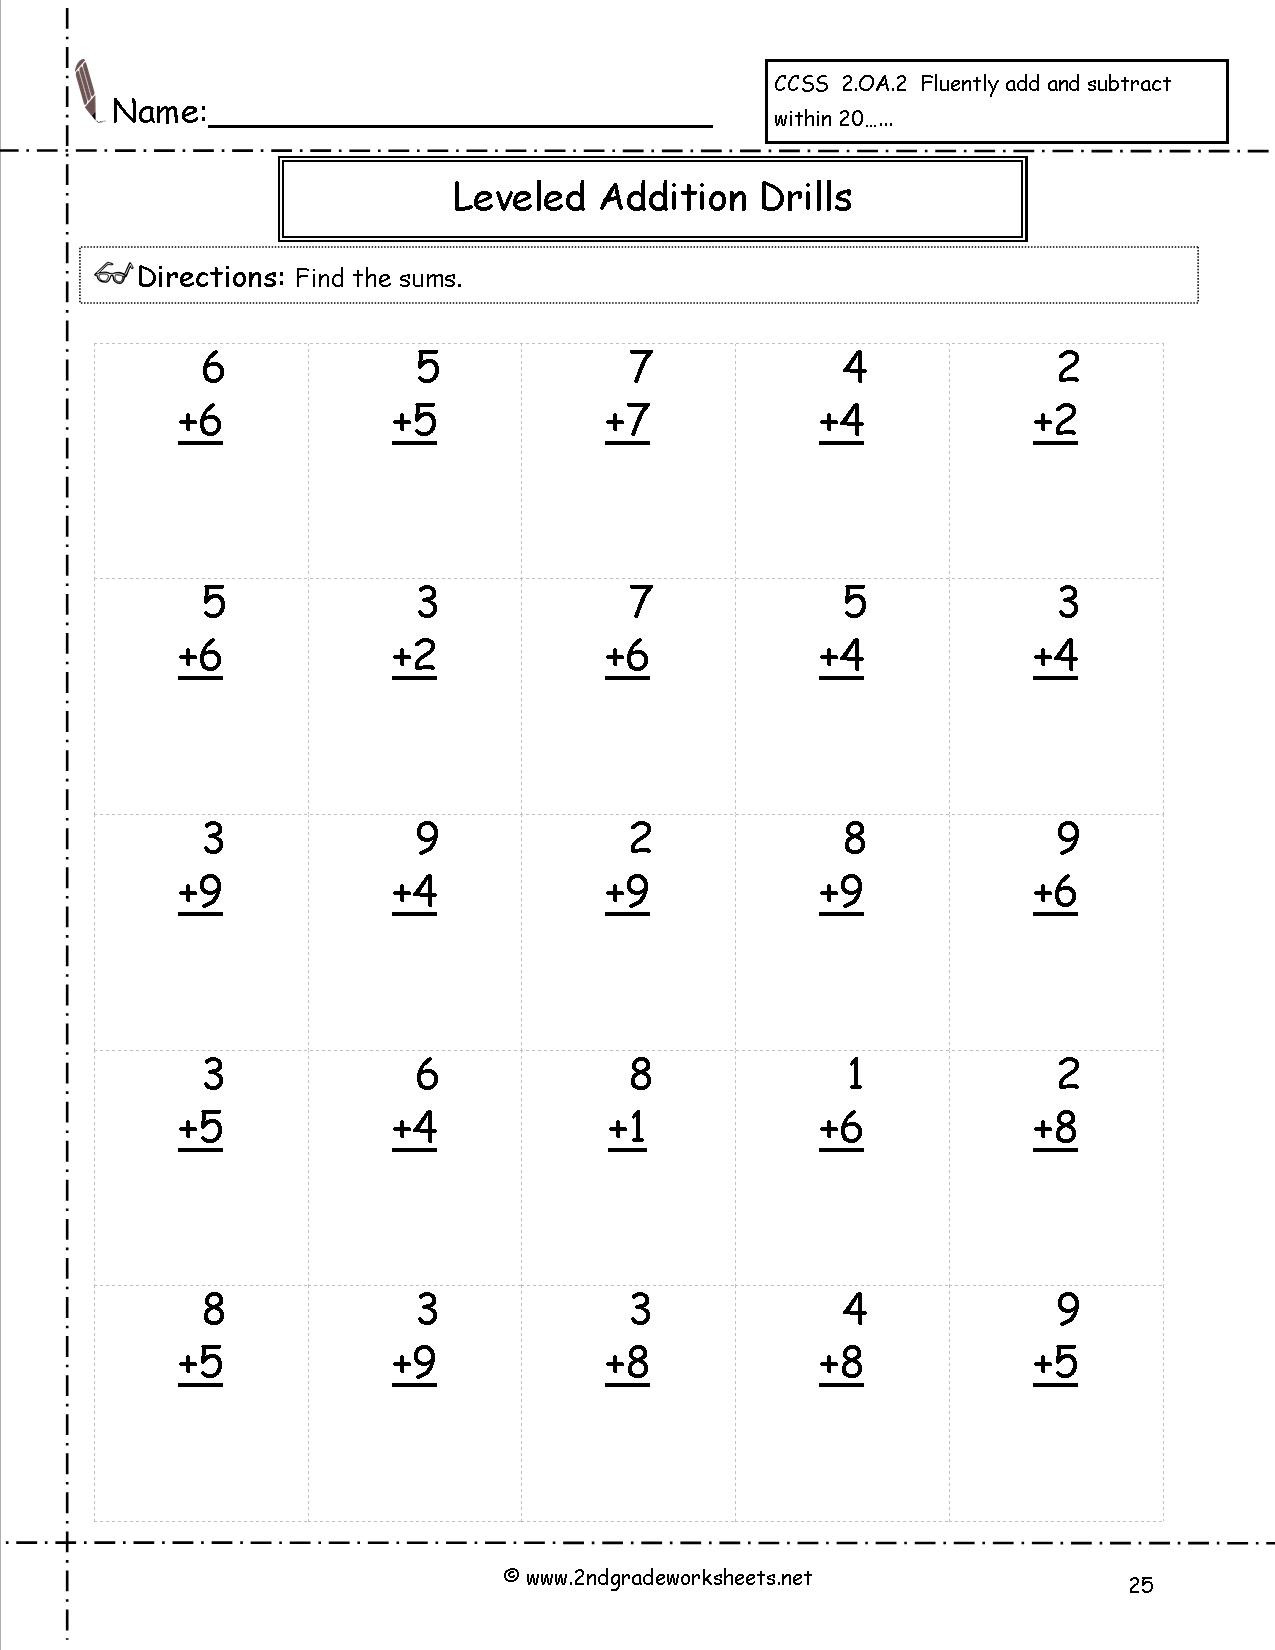 2nd Grade Multiplication Worksheets Third Grade Multiplication Worksheets to Print Number 4